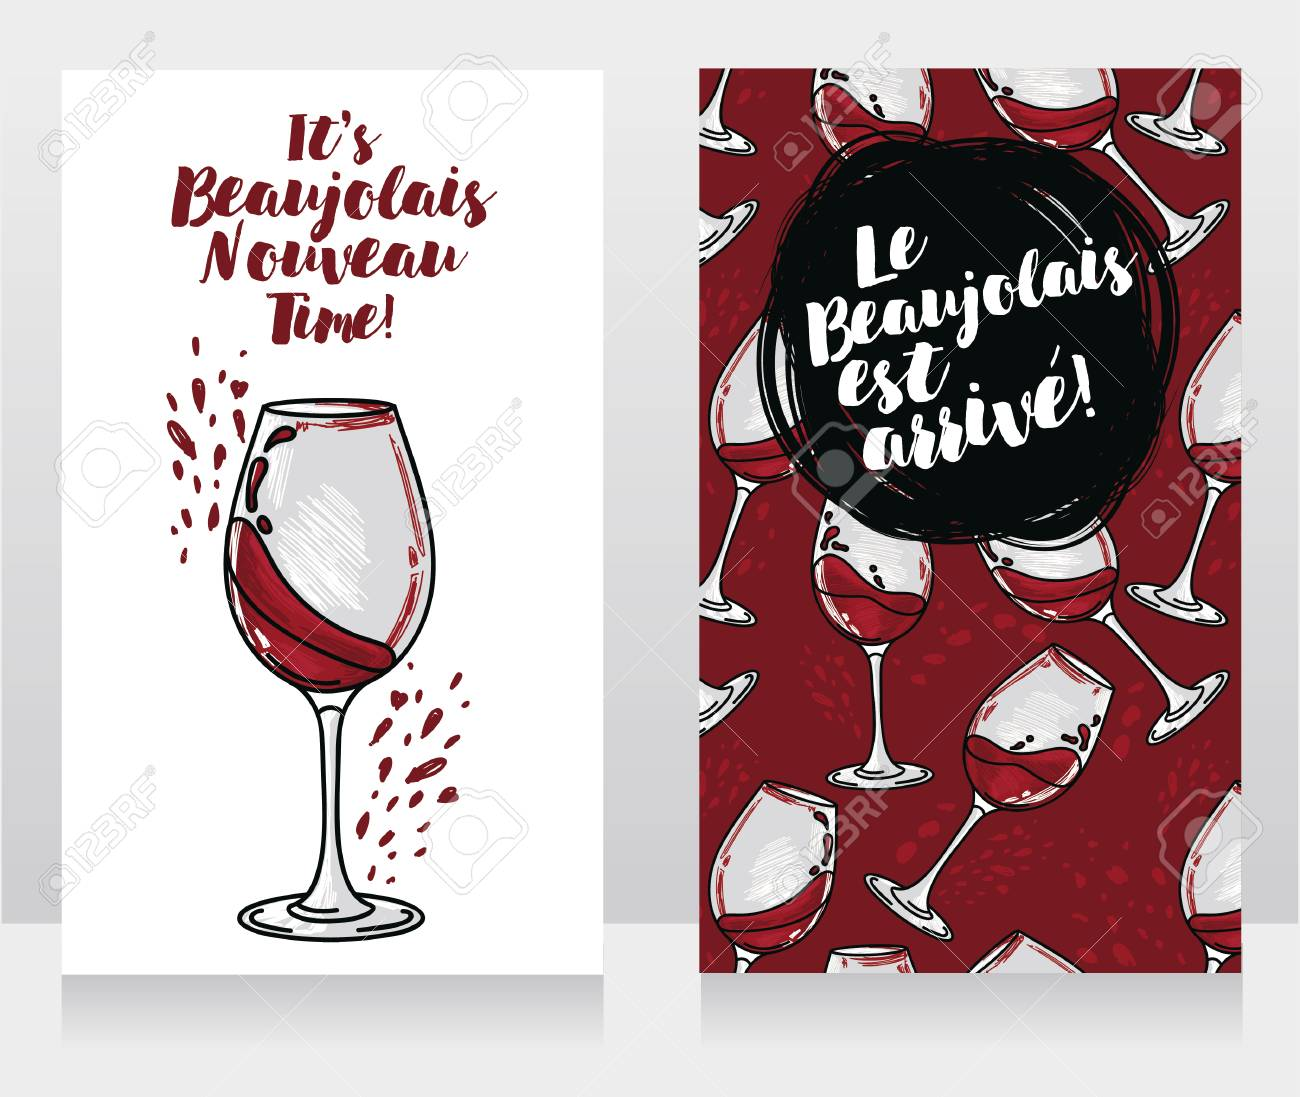 Two Posters For Beaujolais Nouveau, Can Be Used As Menu Cover ...